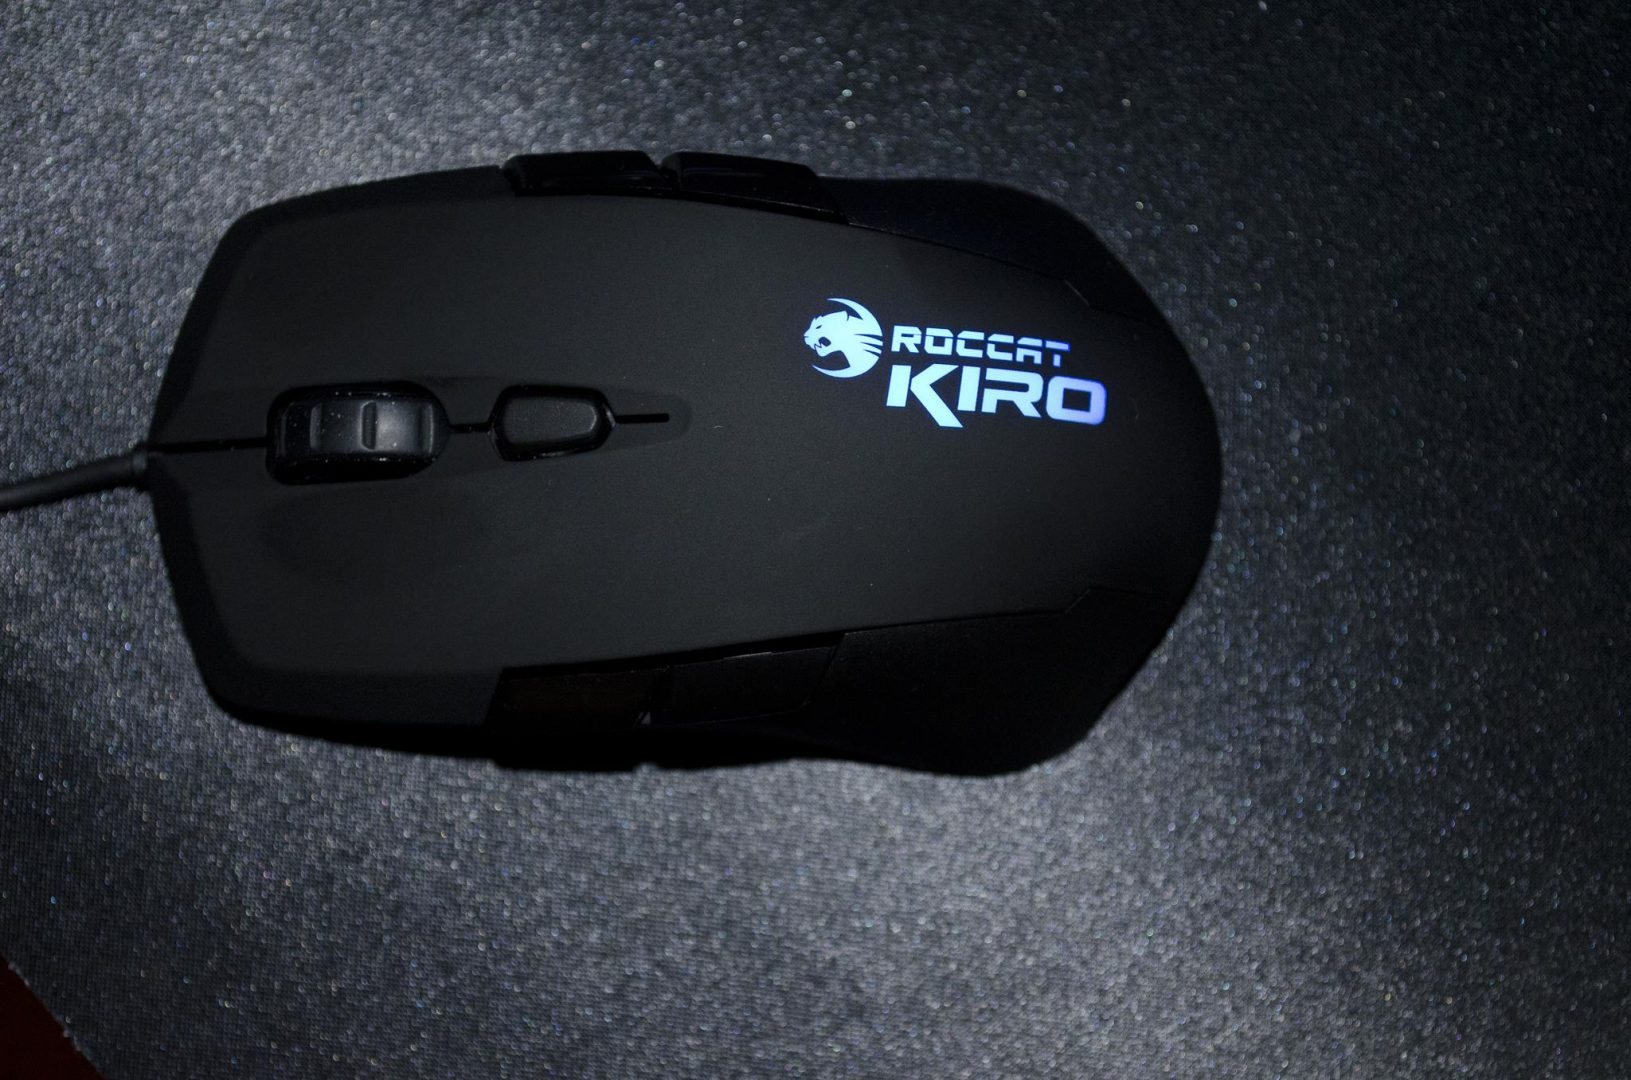 Roccat Kiro Gaming Mouse_15